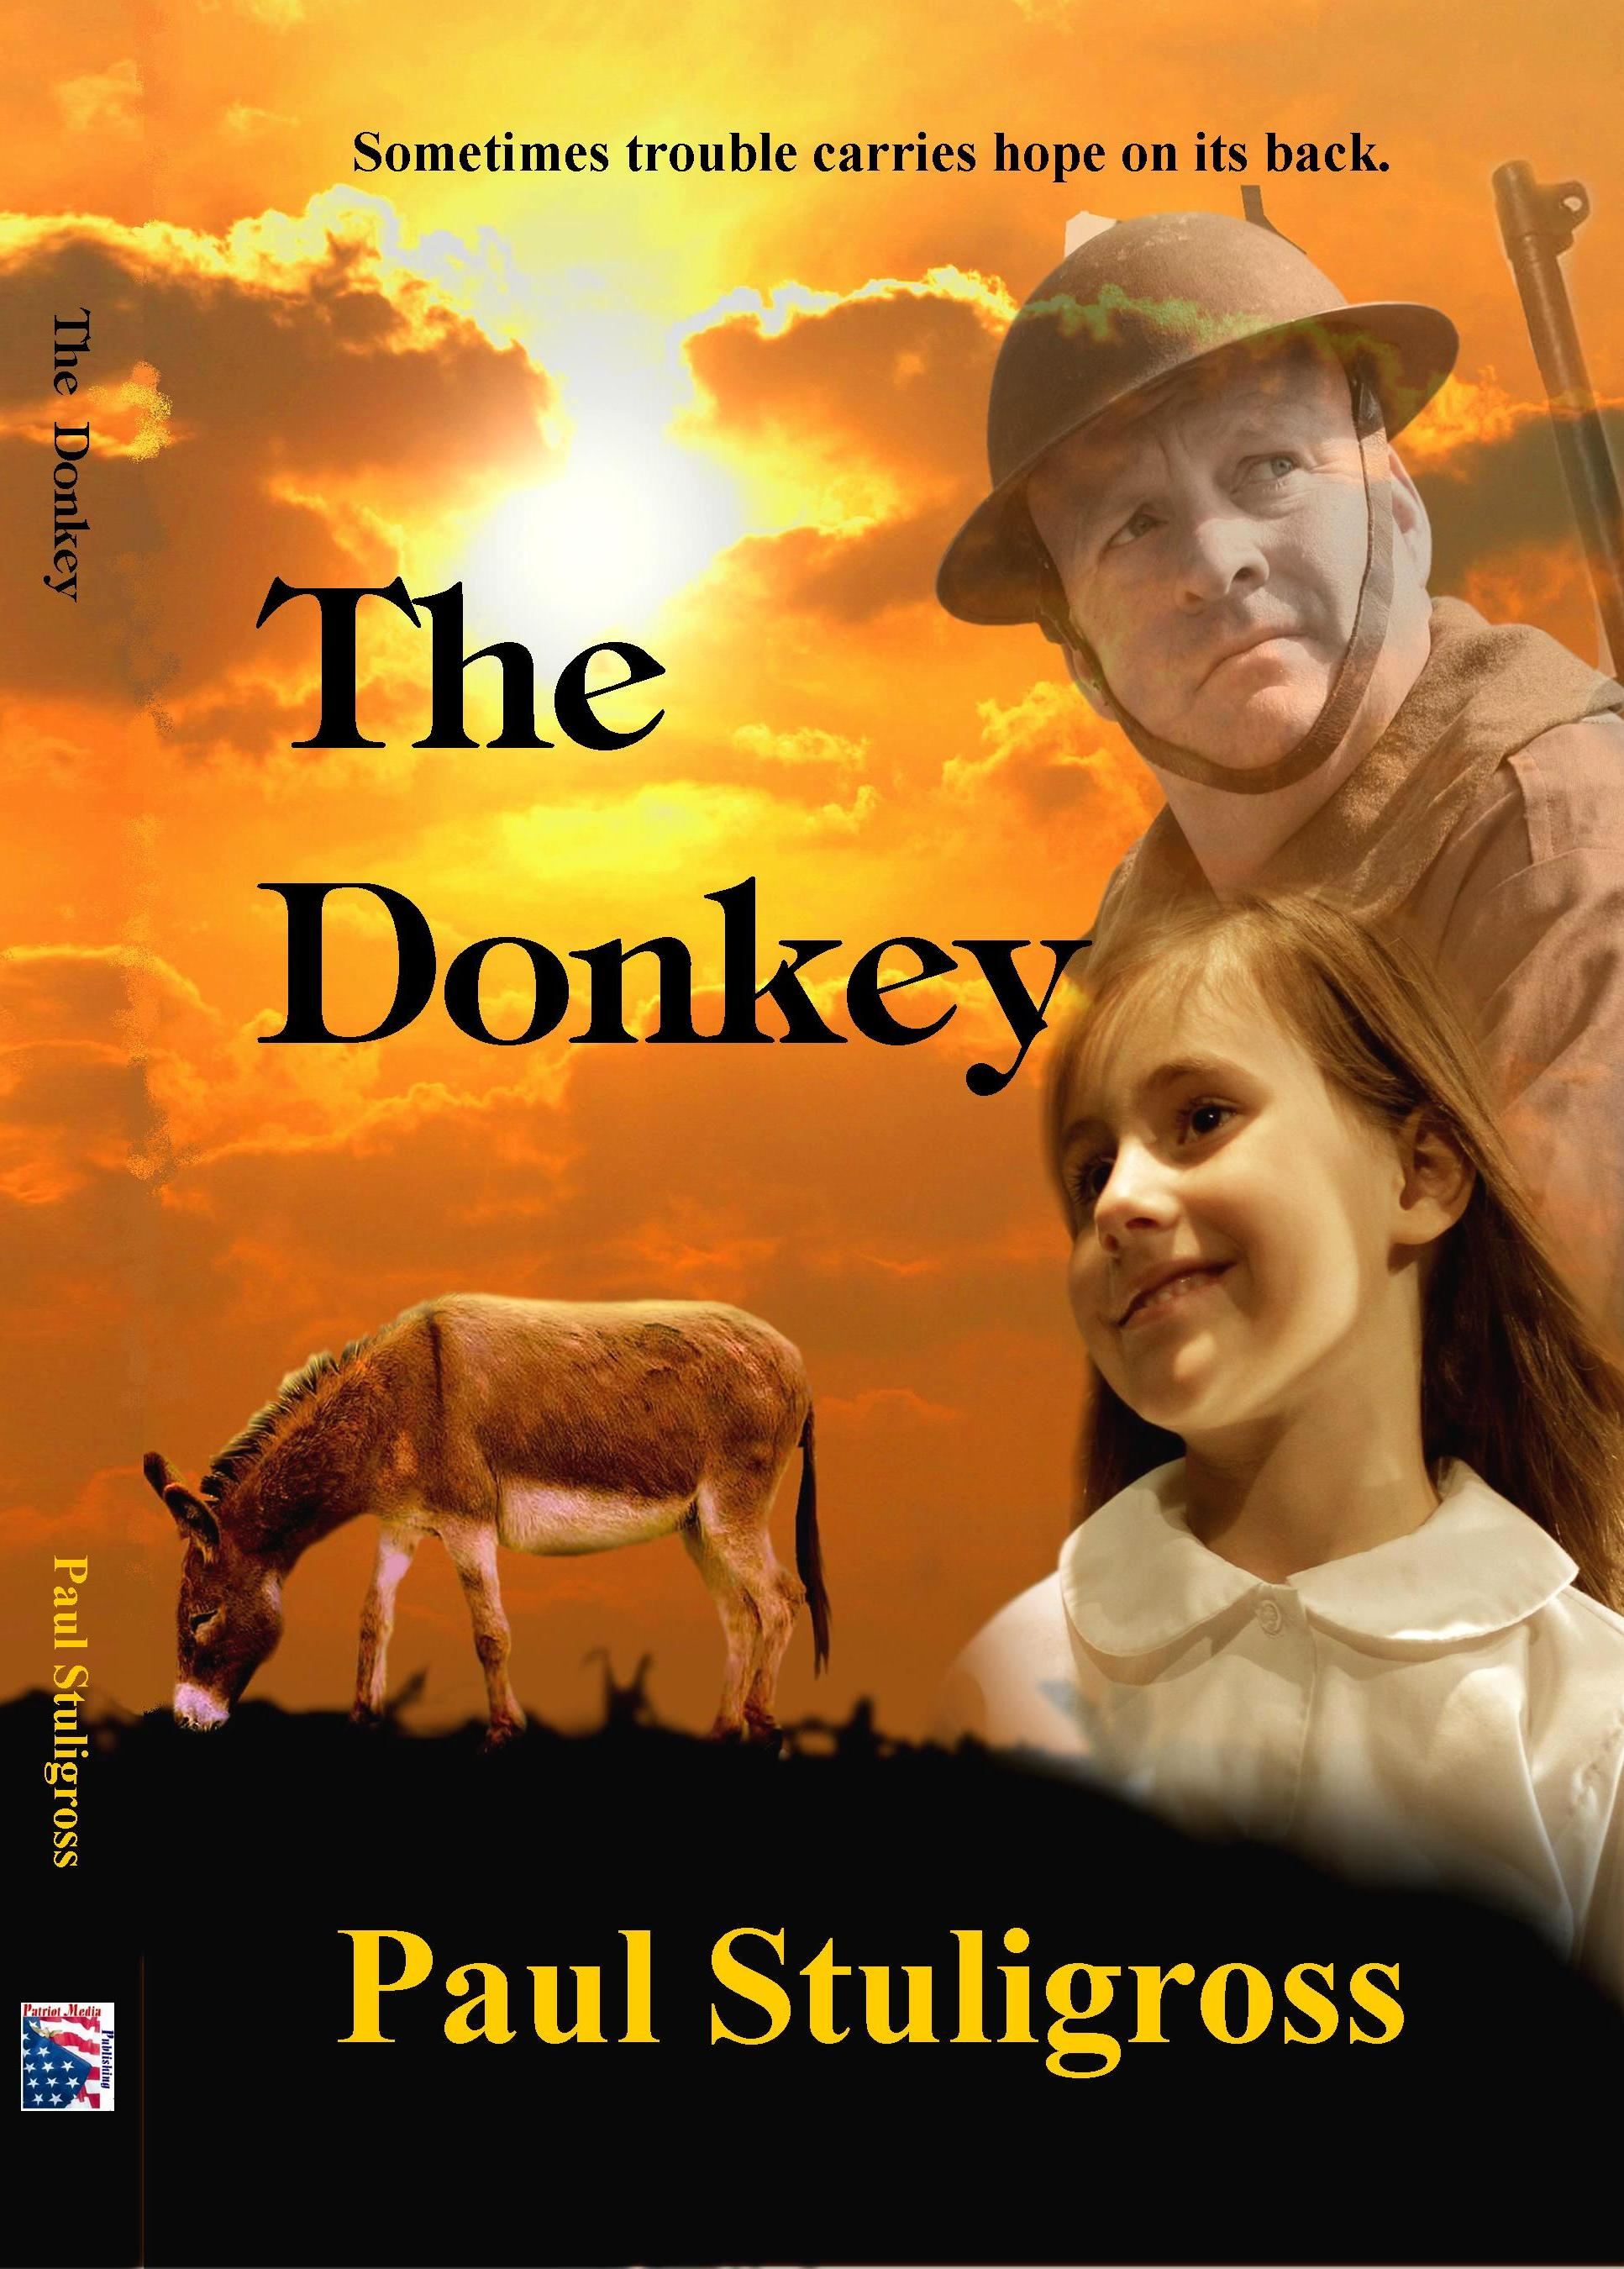 The Donkey by Paul Stuligross